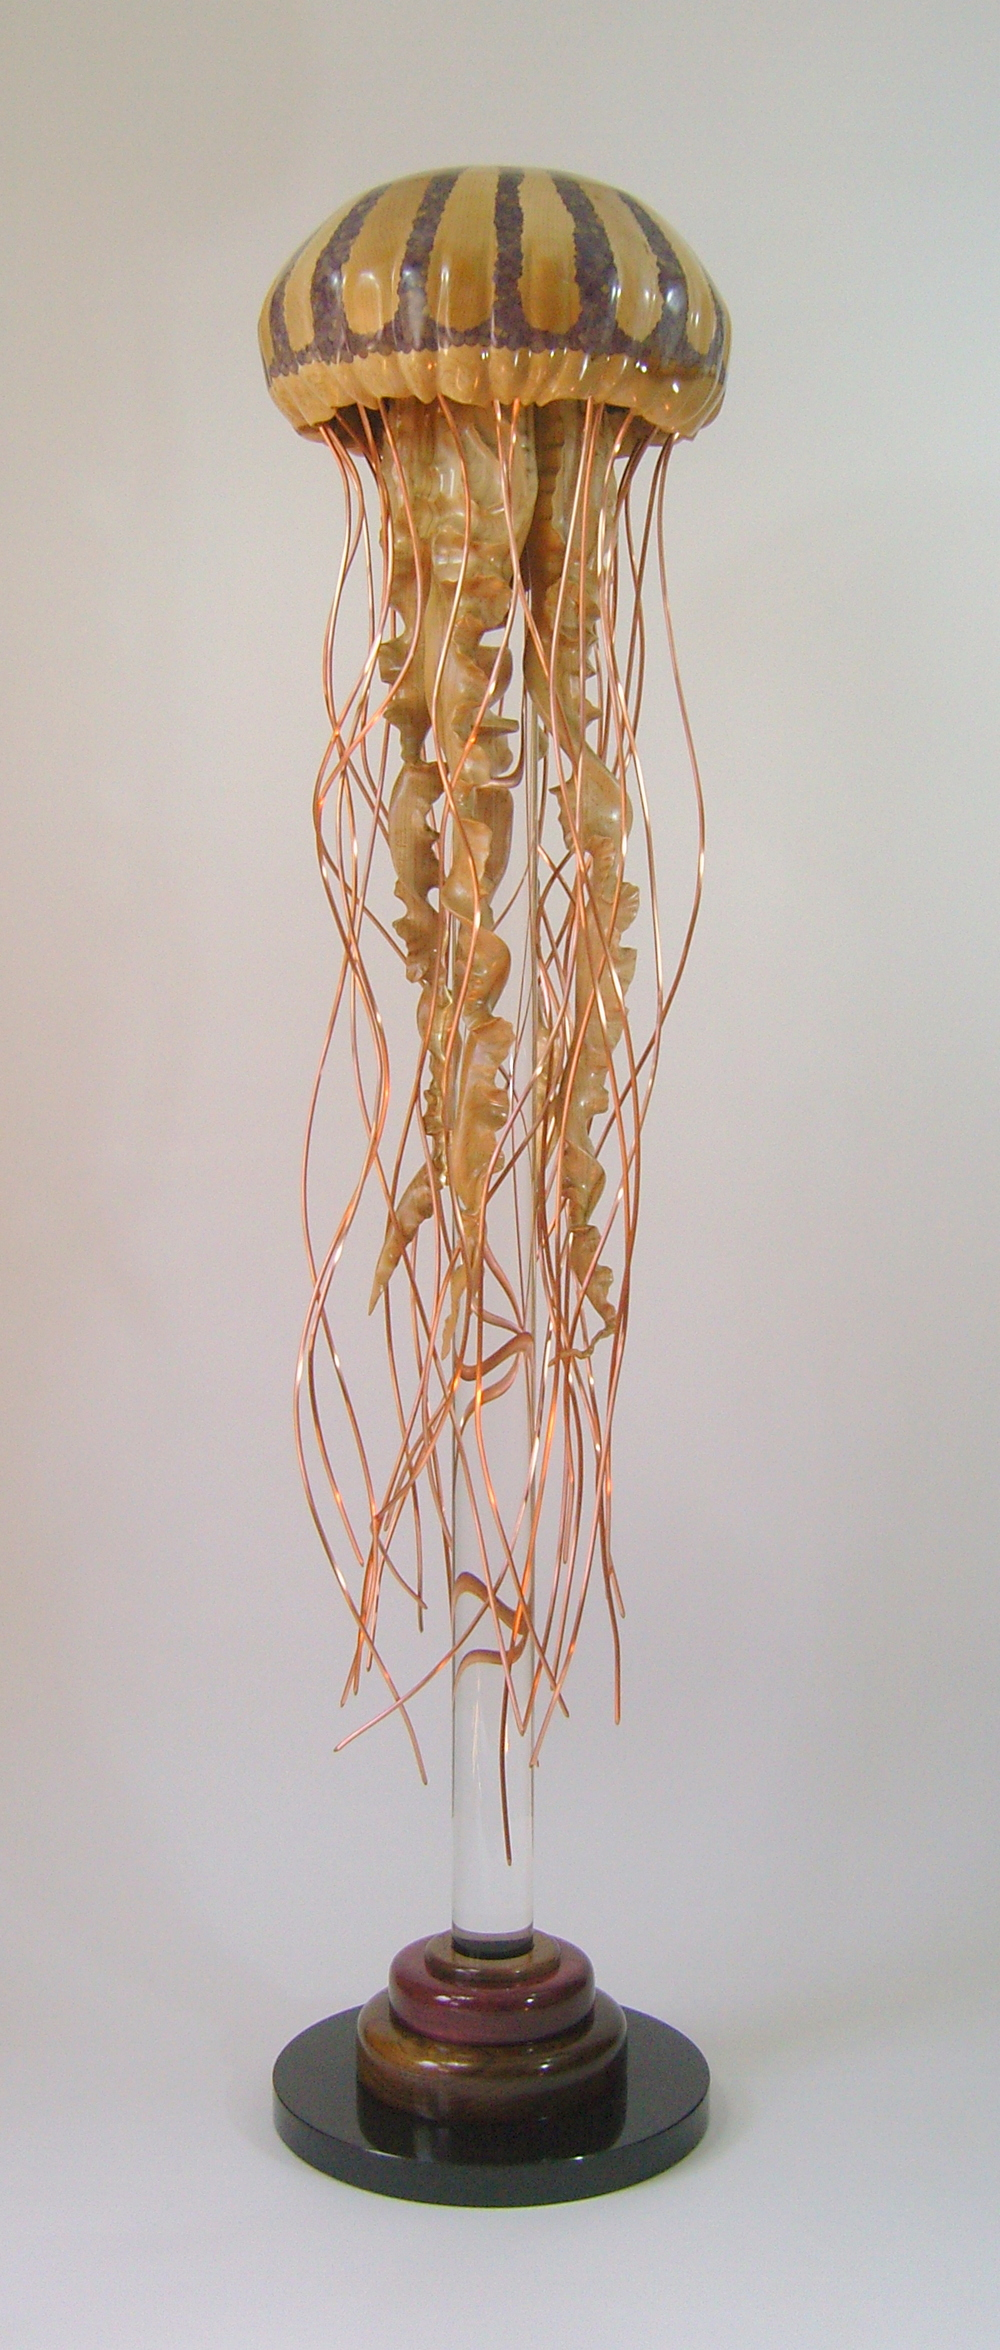 Jellyfish Series Sculpture #4 by Sam Hingston